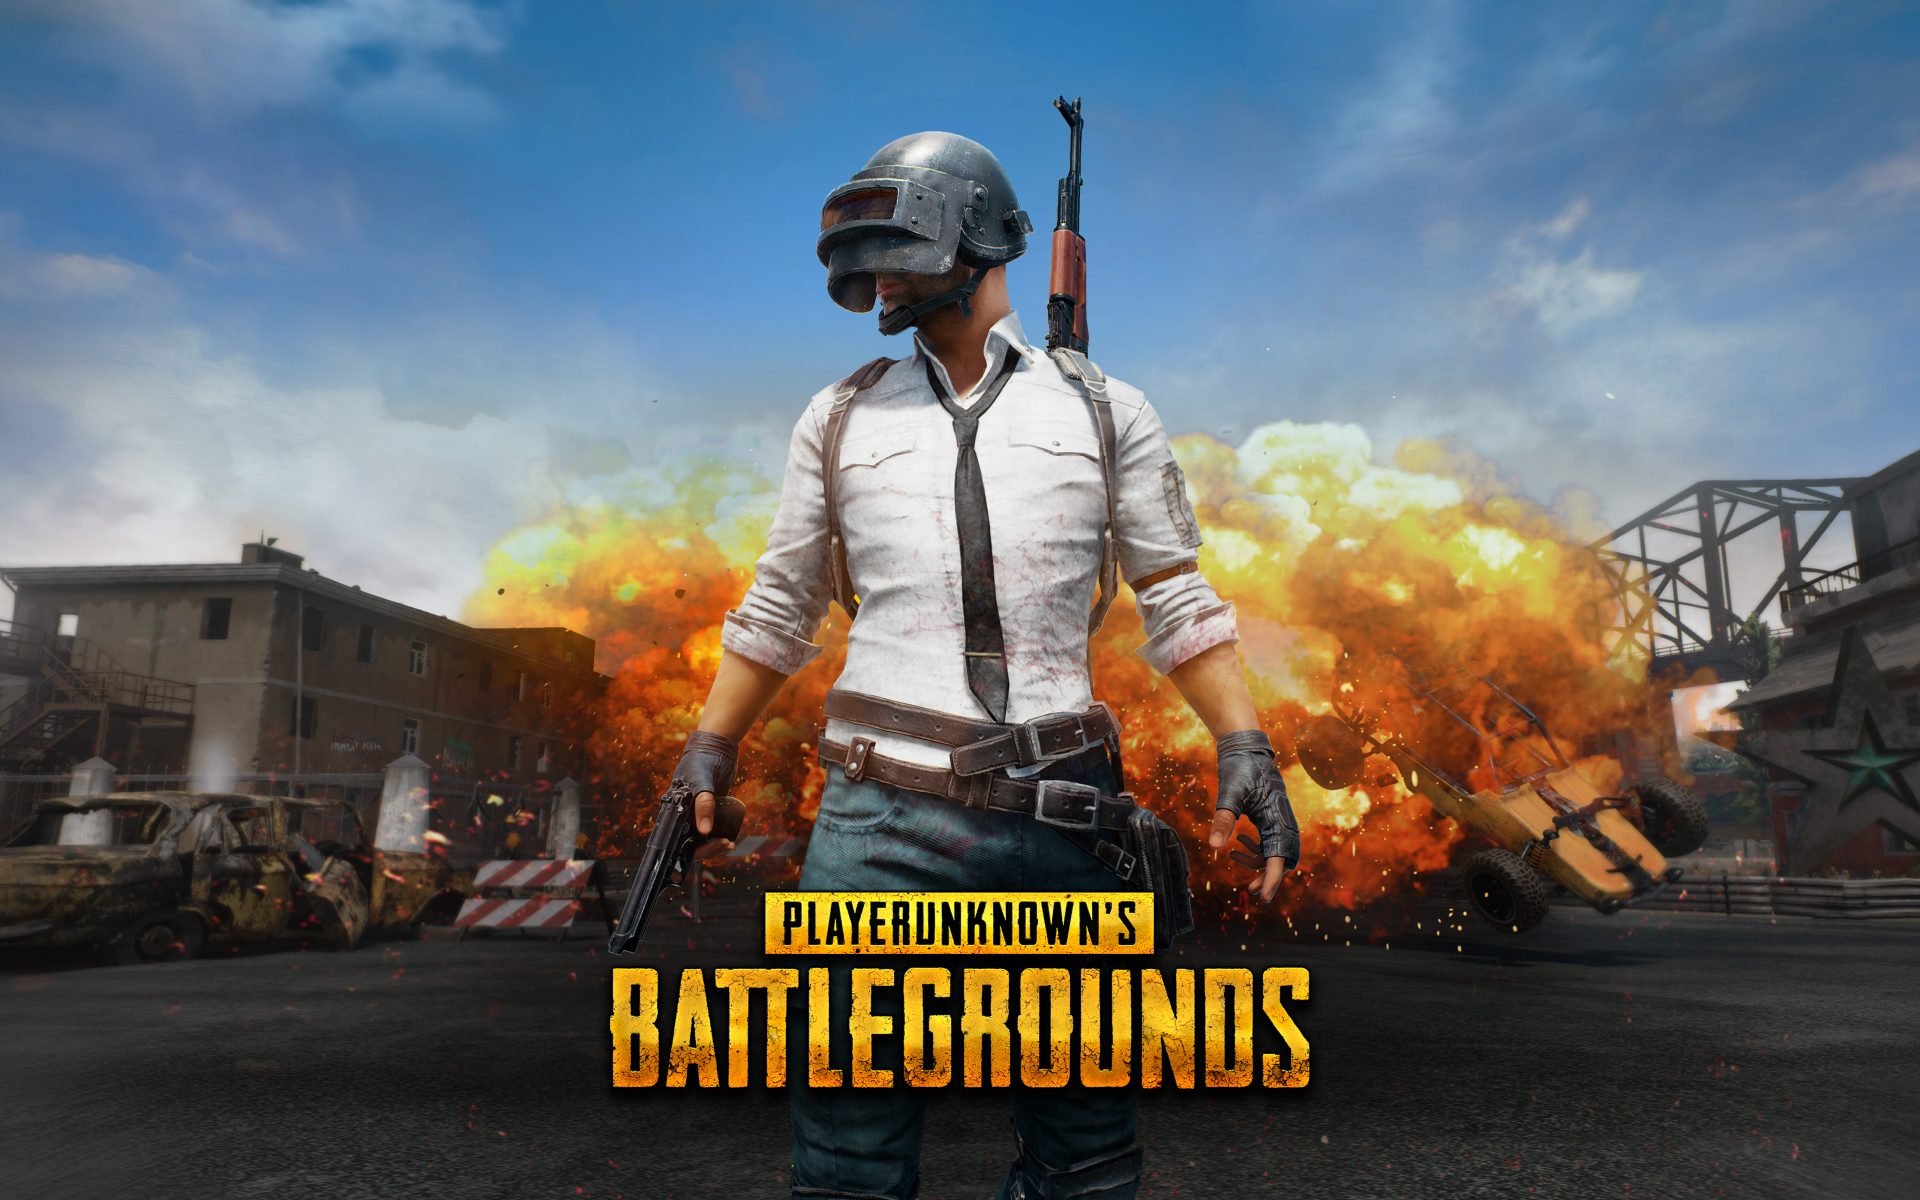 2560x1080 2018 Playerunknowns Battlegrounds 2560x1080: Playerunknowns Battlegrounds Cover PUBG 5K Wallpaper